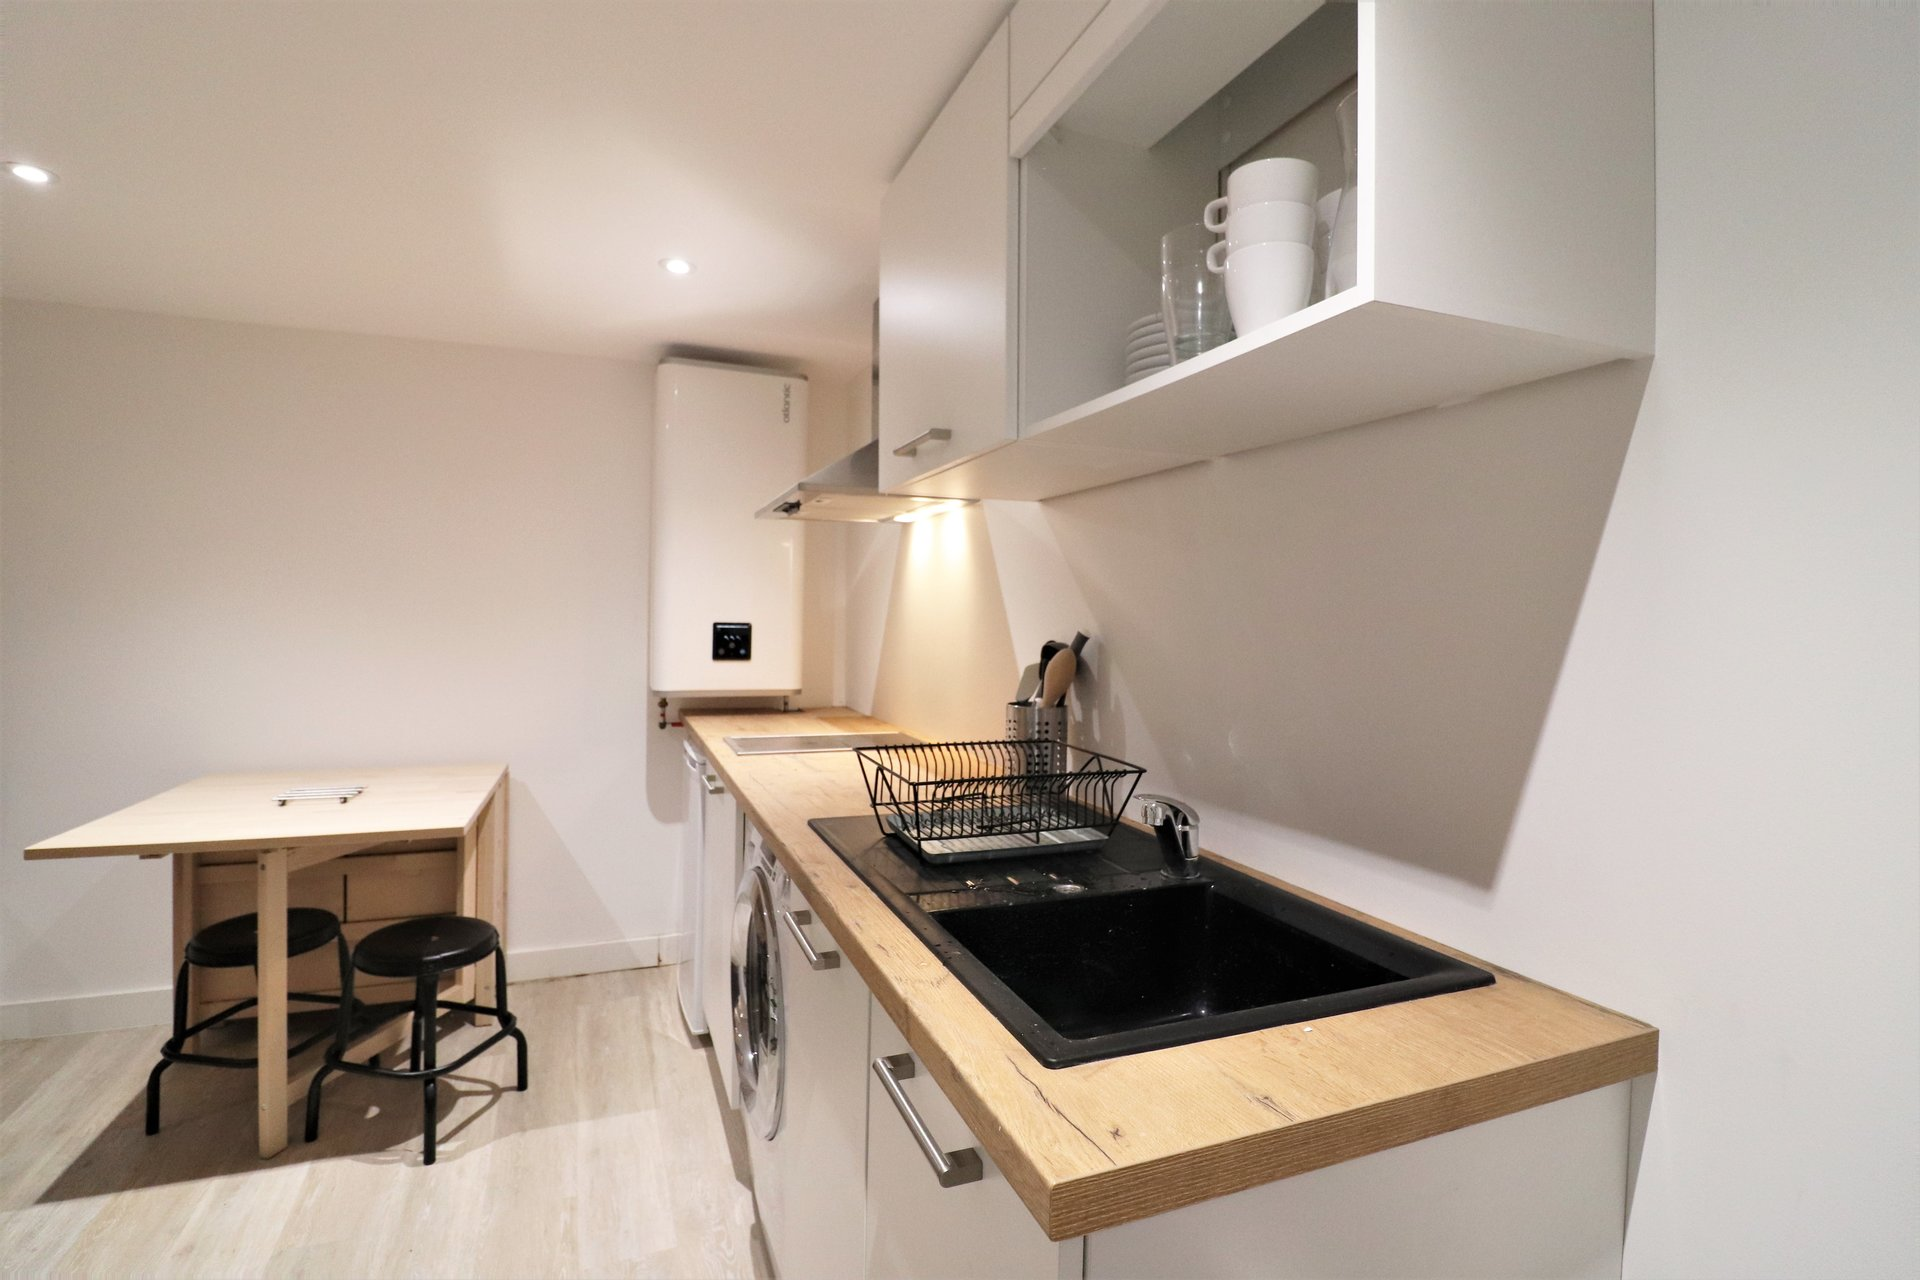 FOR RENT T2 all furnished apartment - TOULOUSE CITY CENTER